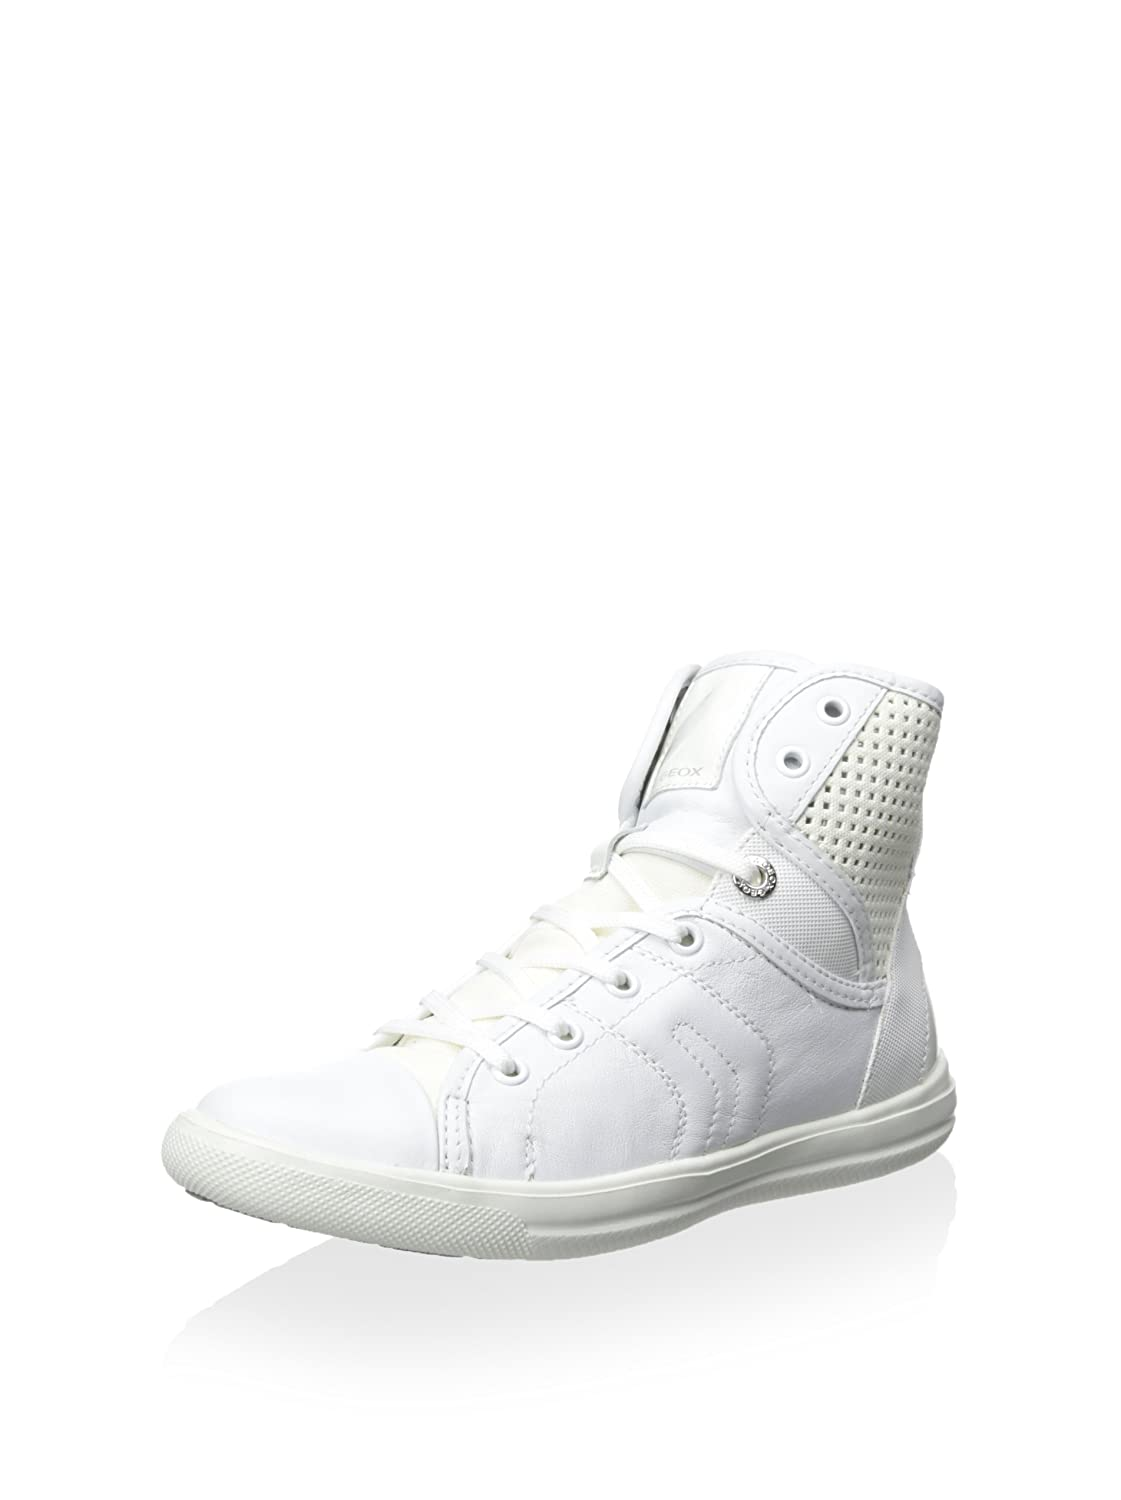 Geox chaussures chaussures d3204A blanc ayumi 0MC10 c1000 blanc c1000 Wei? a12d2b3 - automaticcouplings.space